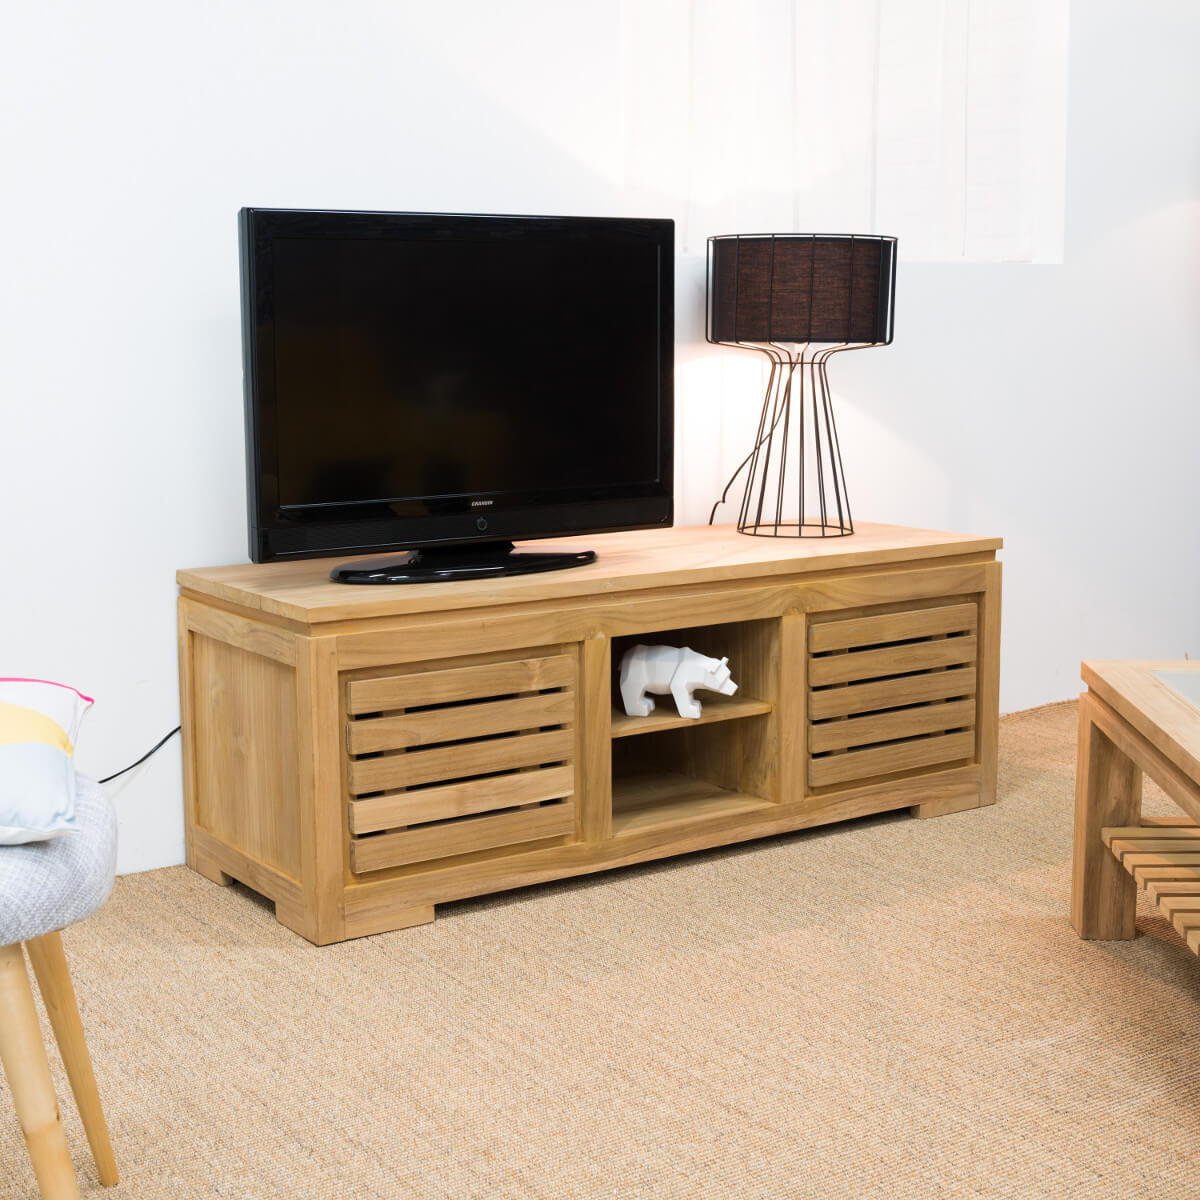 Meuble tv teck meuble tv bois naturel rectangle zen for Meuble tv 100 cm longueur